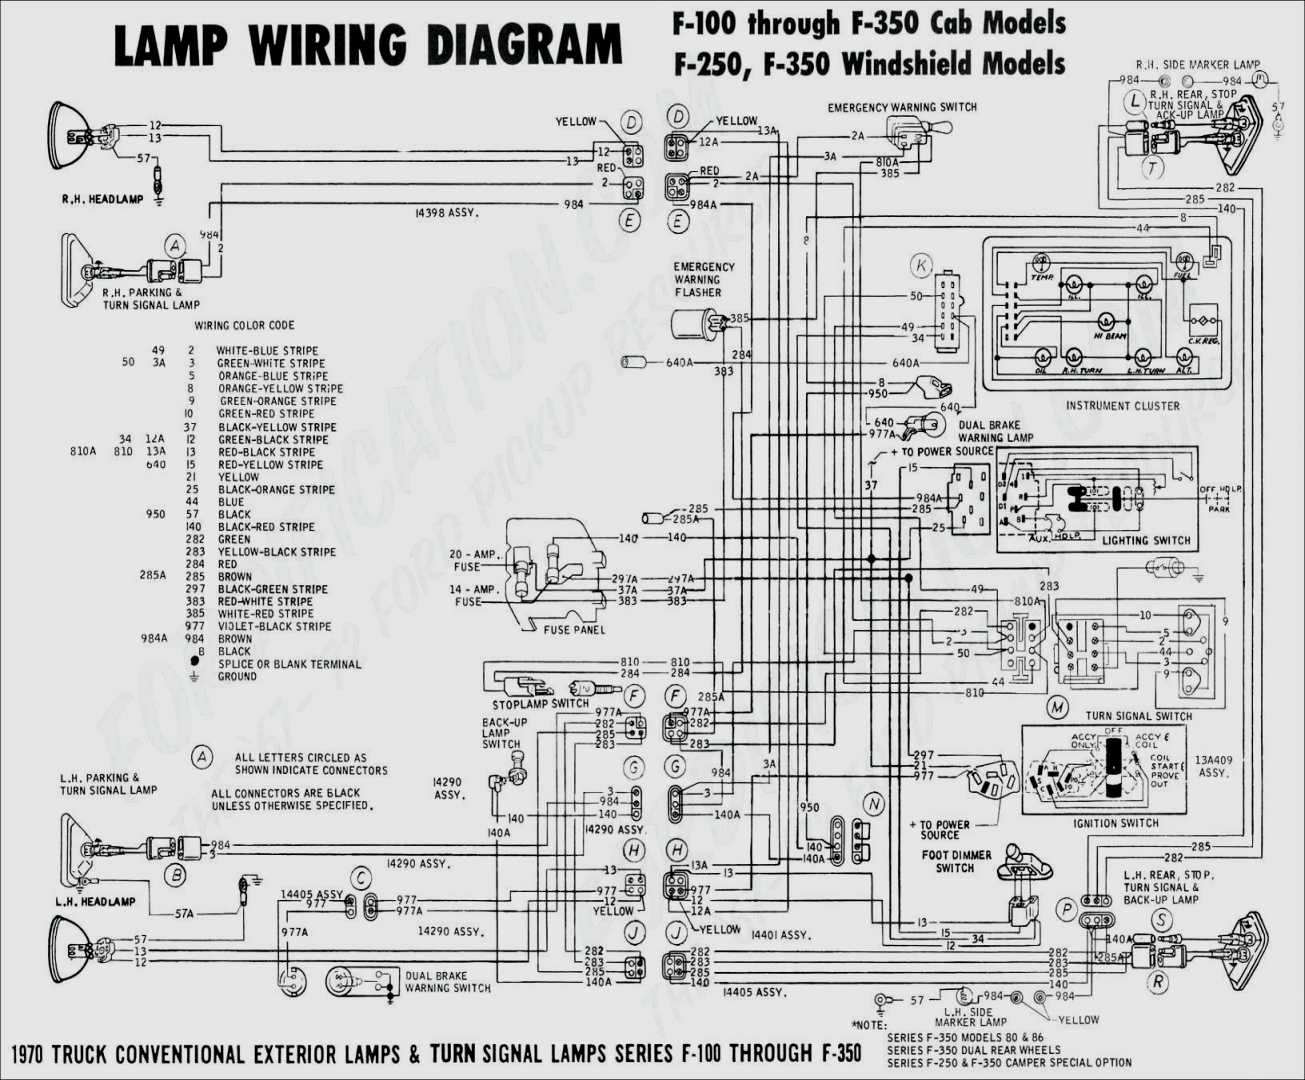 2007 Ford Ranger Wiring Diagram - Wiring Diagrams - Ranger Trailer Wiring Diagram